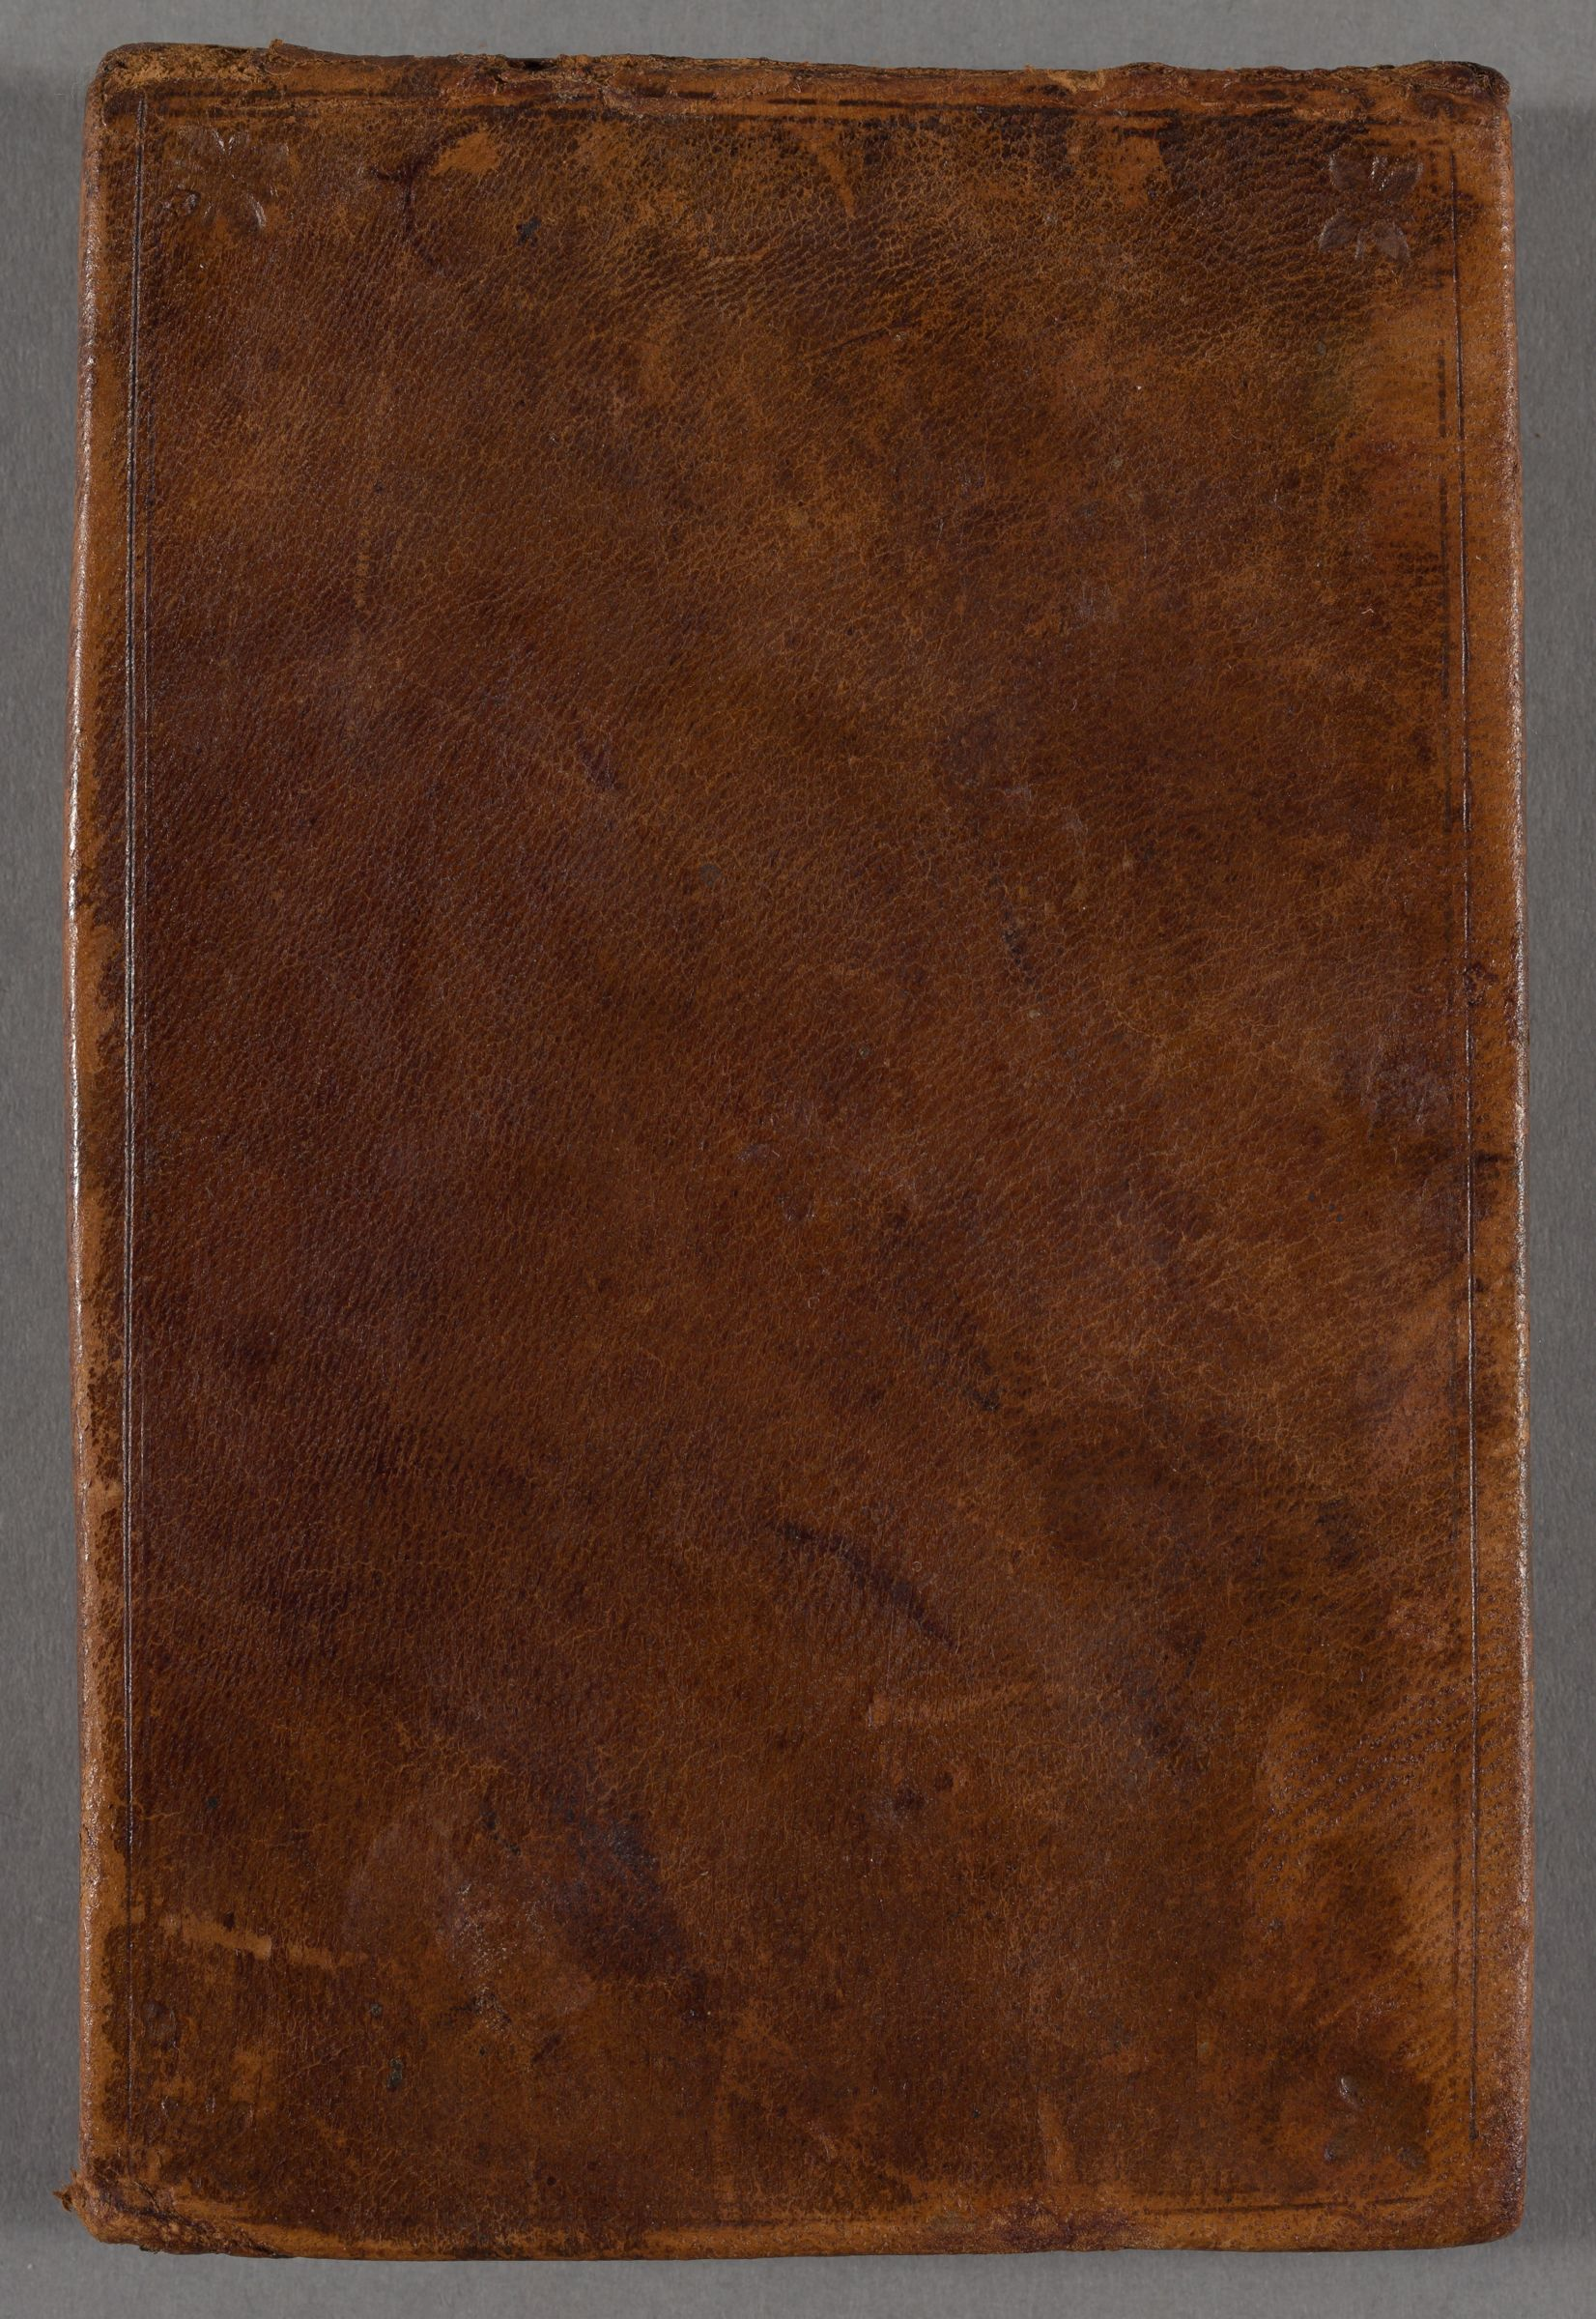 This leather bound, unsigned, autograph volume contains 224 pages of manuscript abstracts, in Latin, of sermons by Rev. Nathaniel Clapp (1668/1669-1745; Harvard AB 1690) a minister in Newport, Rhode Island. They span the period from 1706-1707.